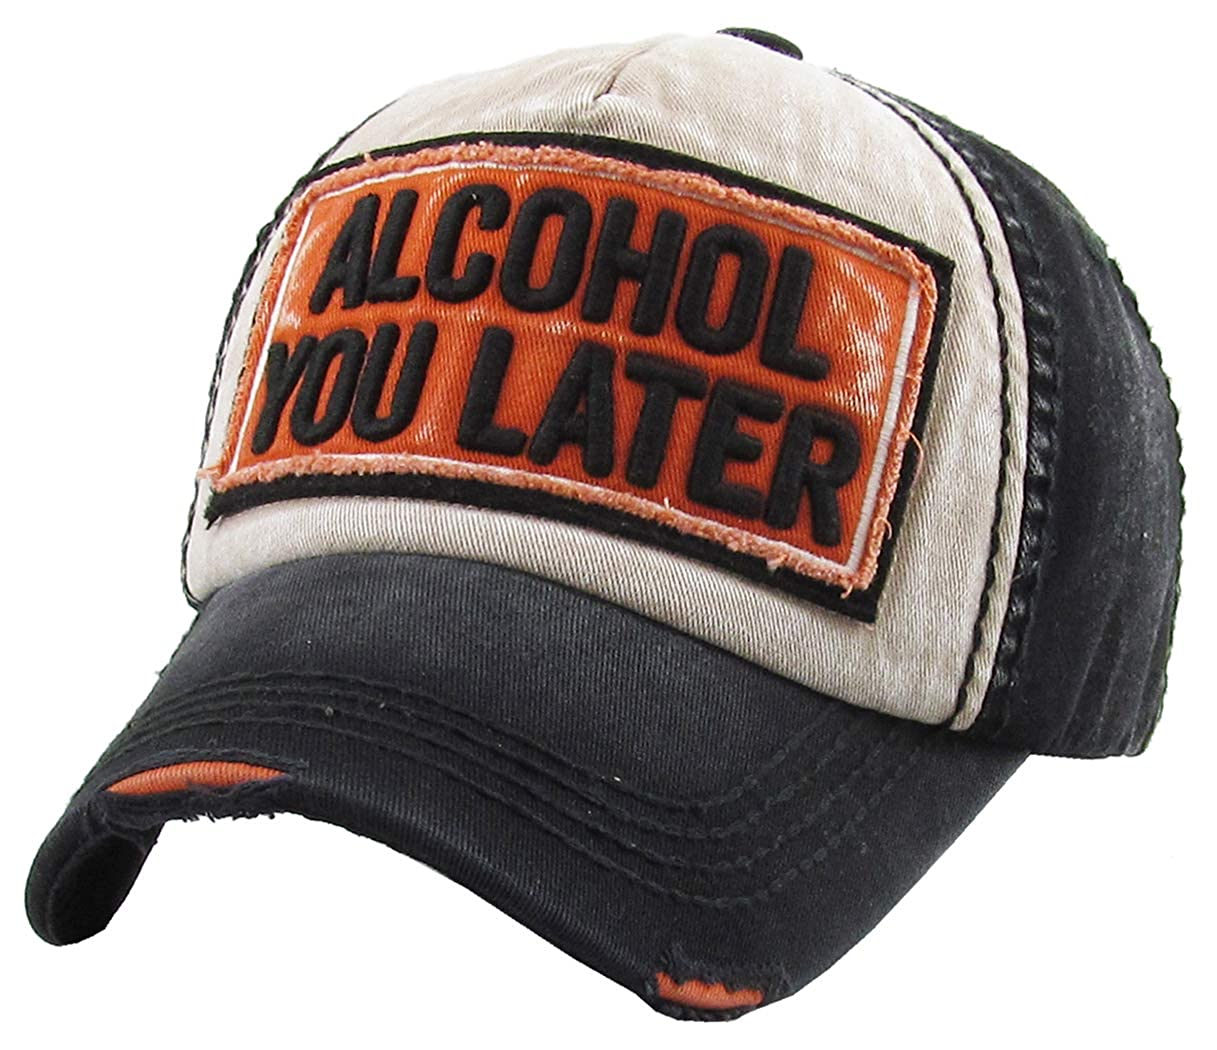 173a4cbcc Amazon.com: H-212-AYL0635 Distressed Baseball Cap - Alcohol you later,  Black/Orange: Clothing